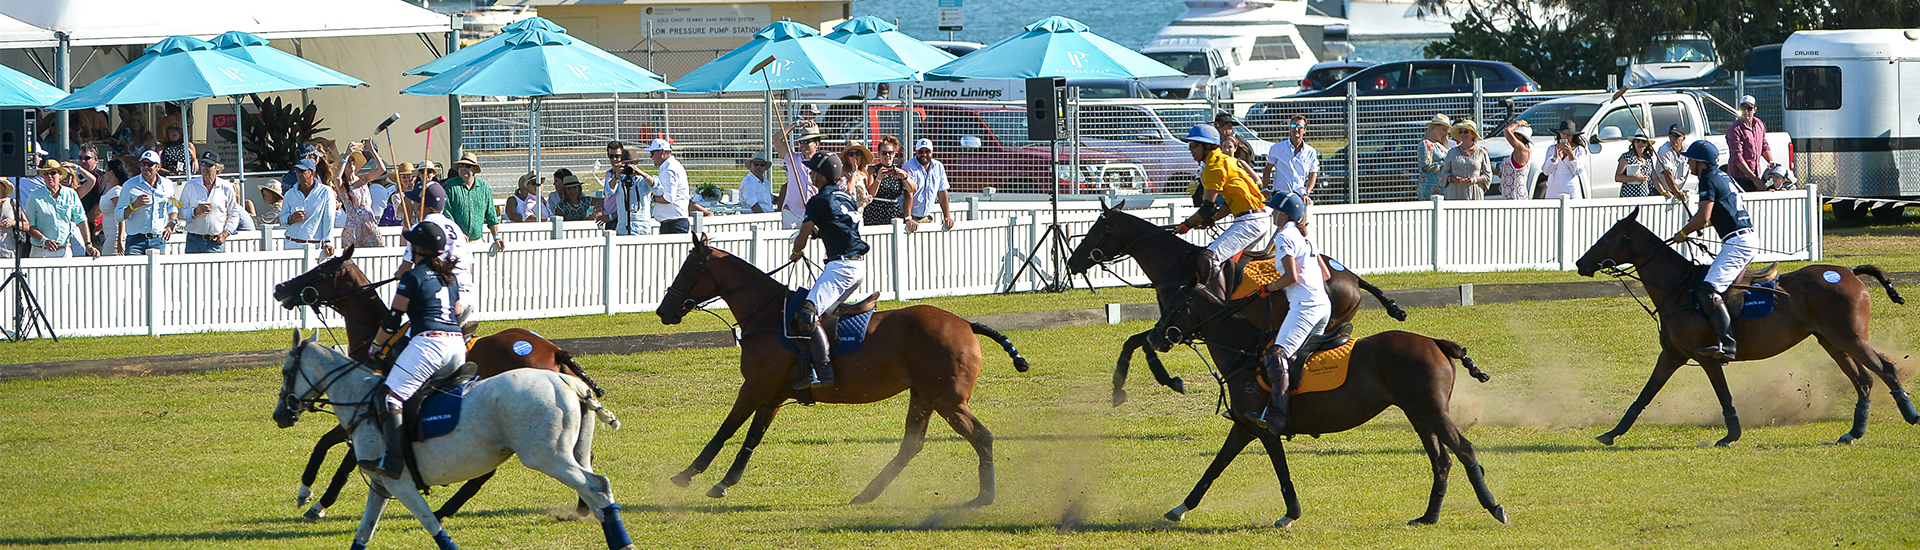 Win tickets to Magic Millions Polo | Brisbane Racing Club